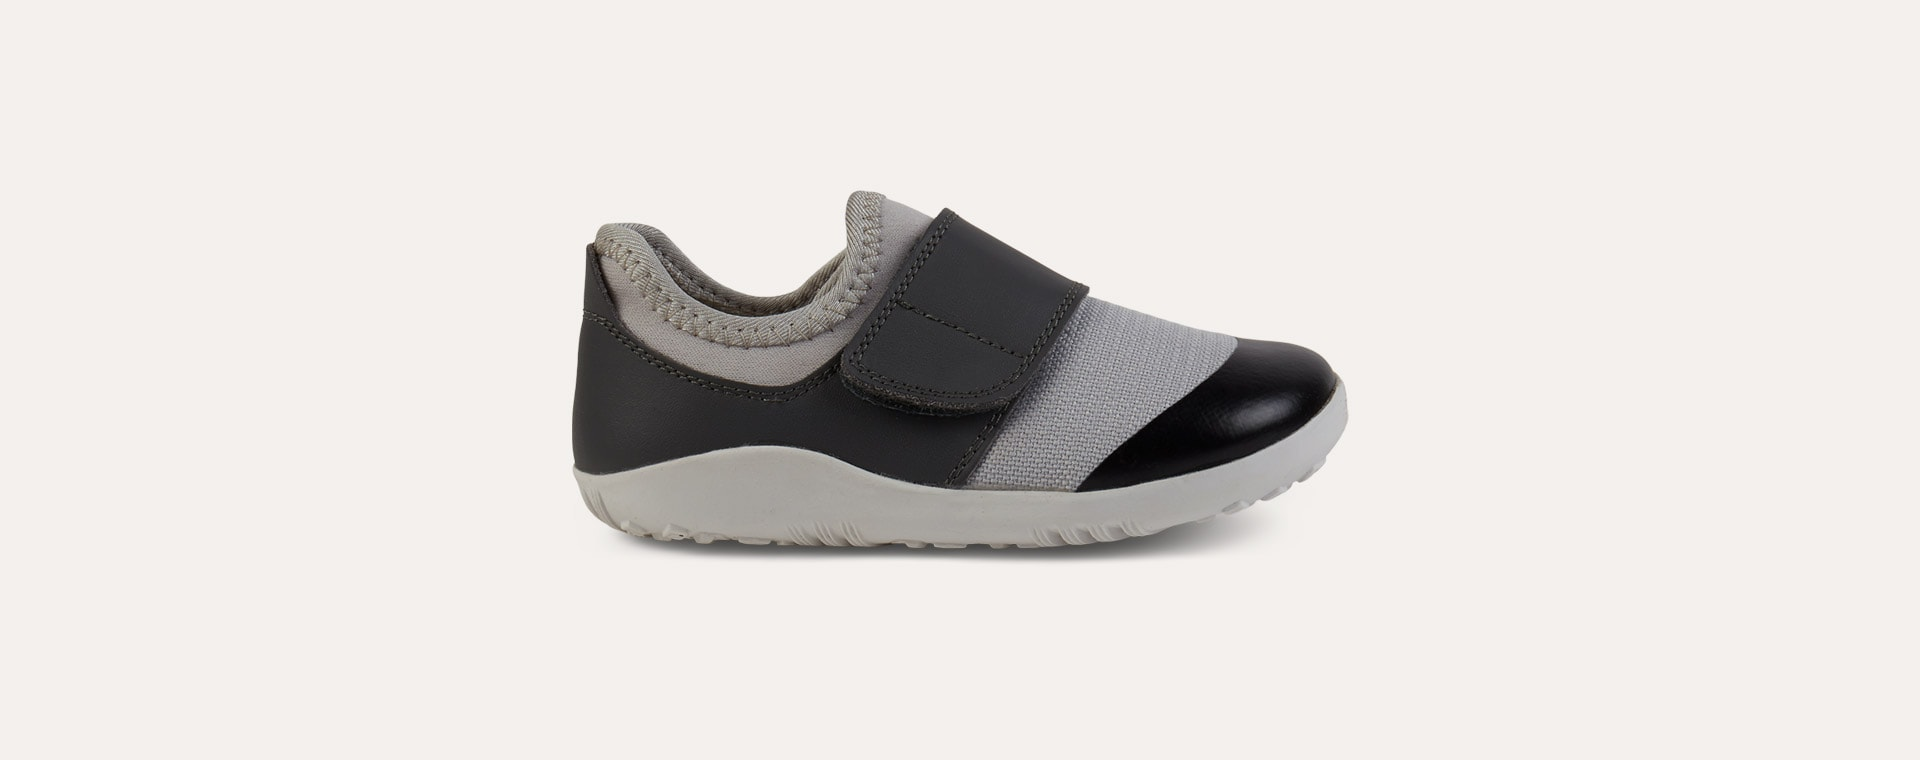 Grey Charcoal Bobux I-Walk Lo Dimension Trainer